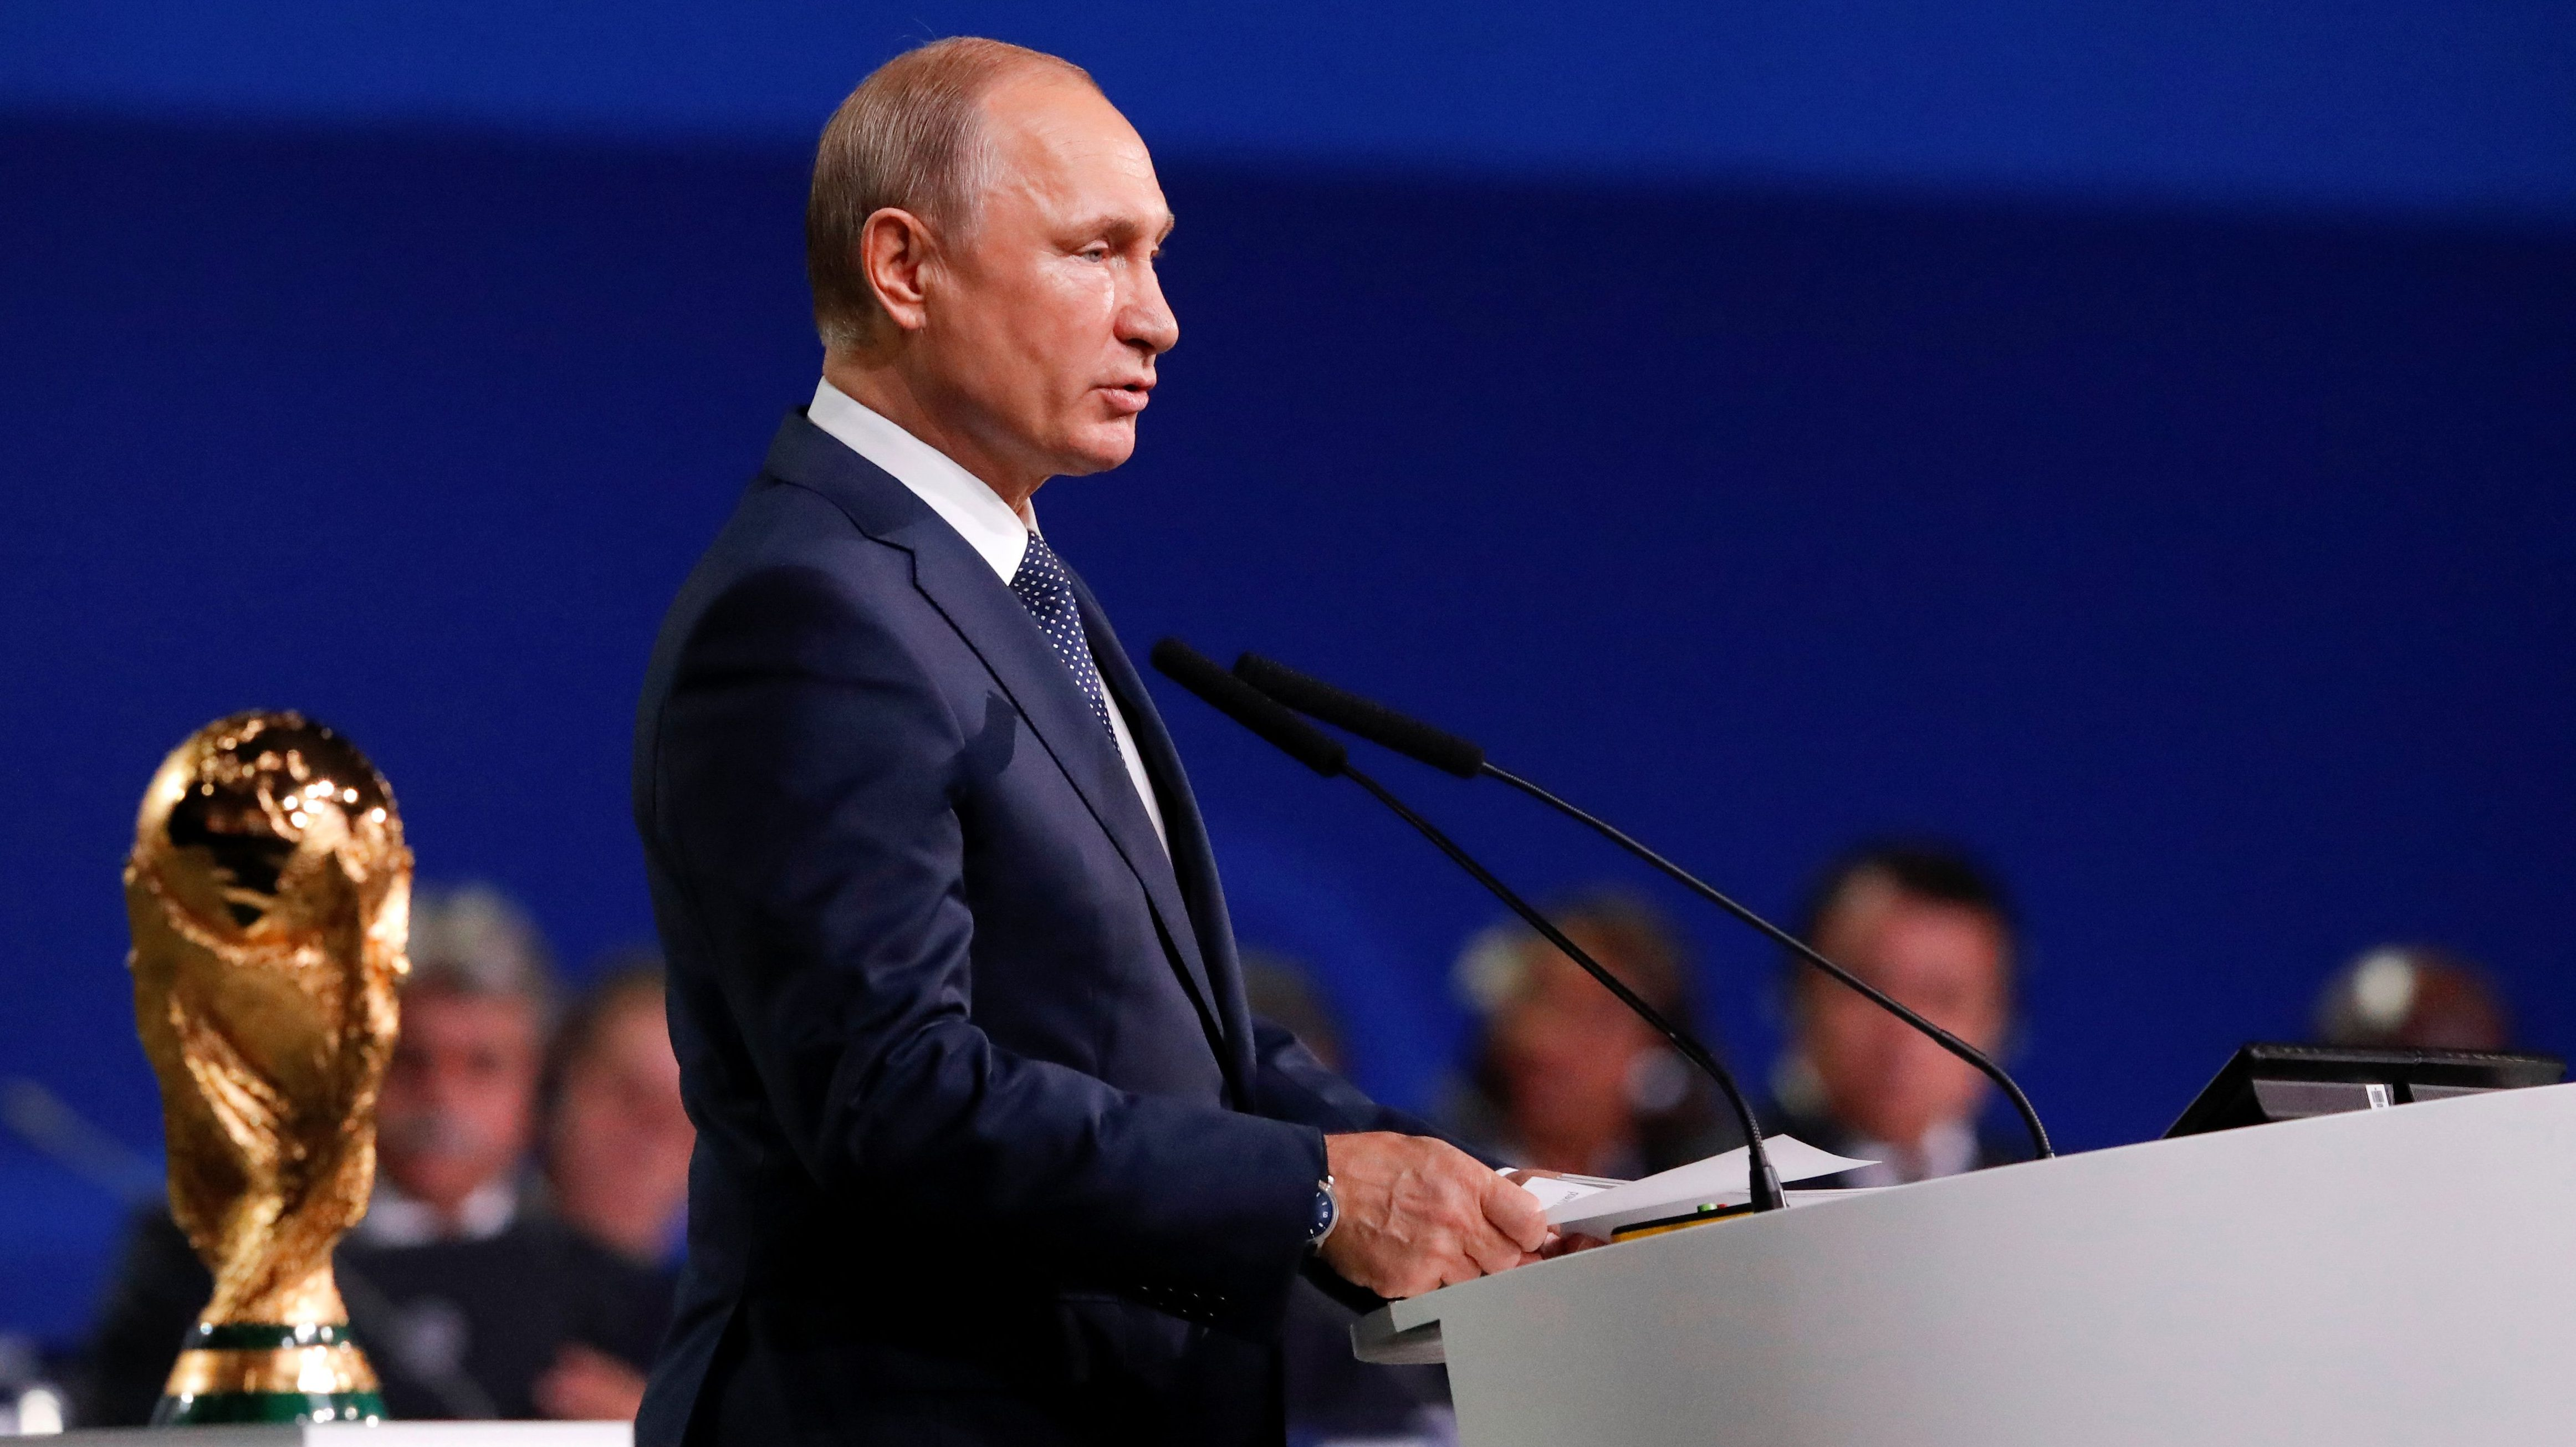 Russian President Vladimir Putin delivers a speech during the 68th FIFA Congress in Moscow, Russia June 13, 2018.